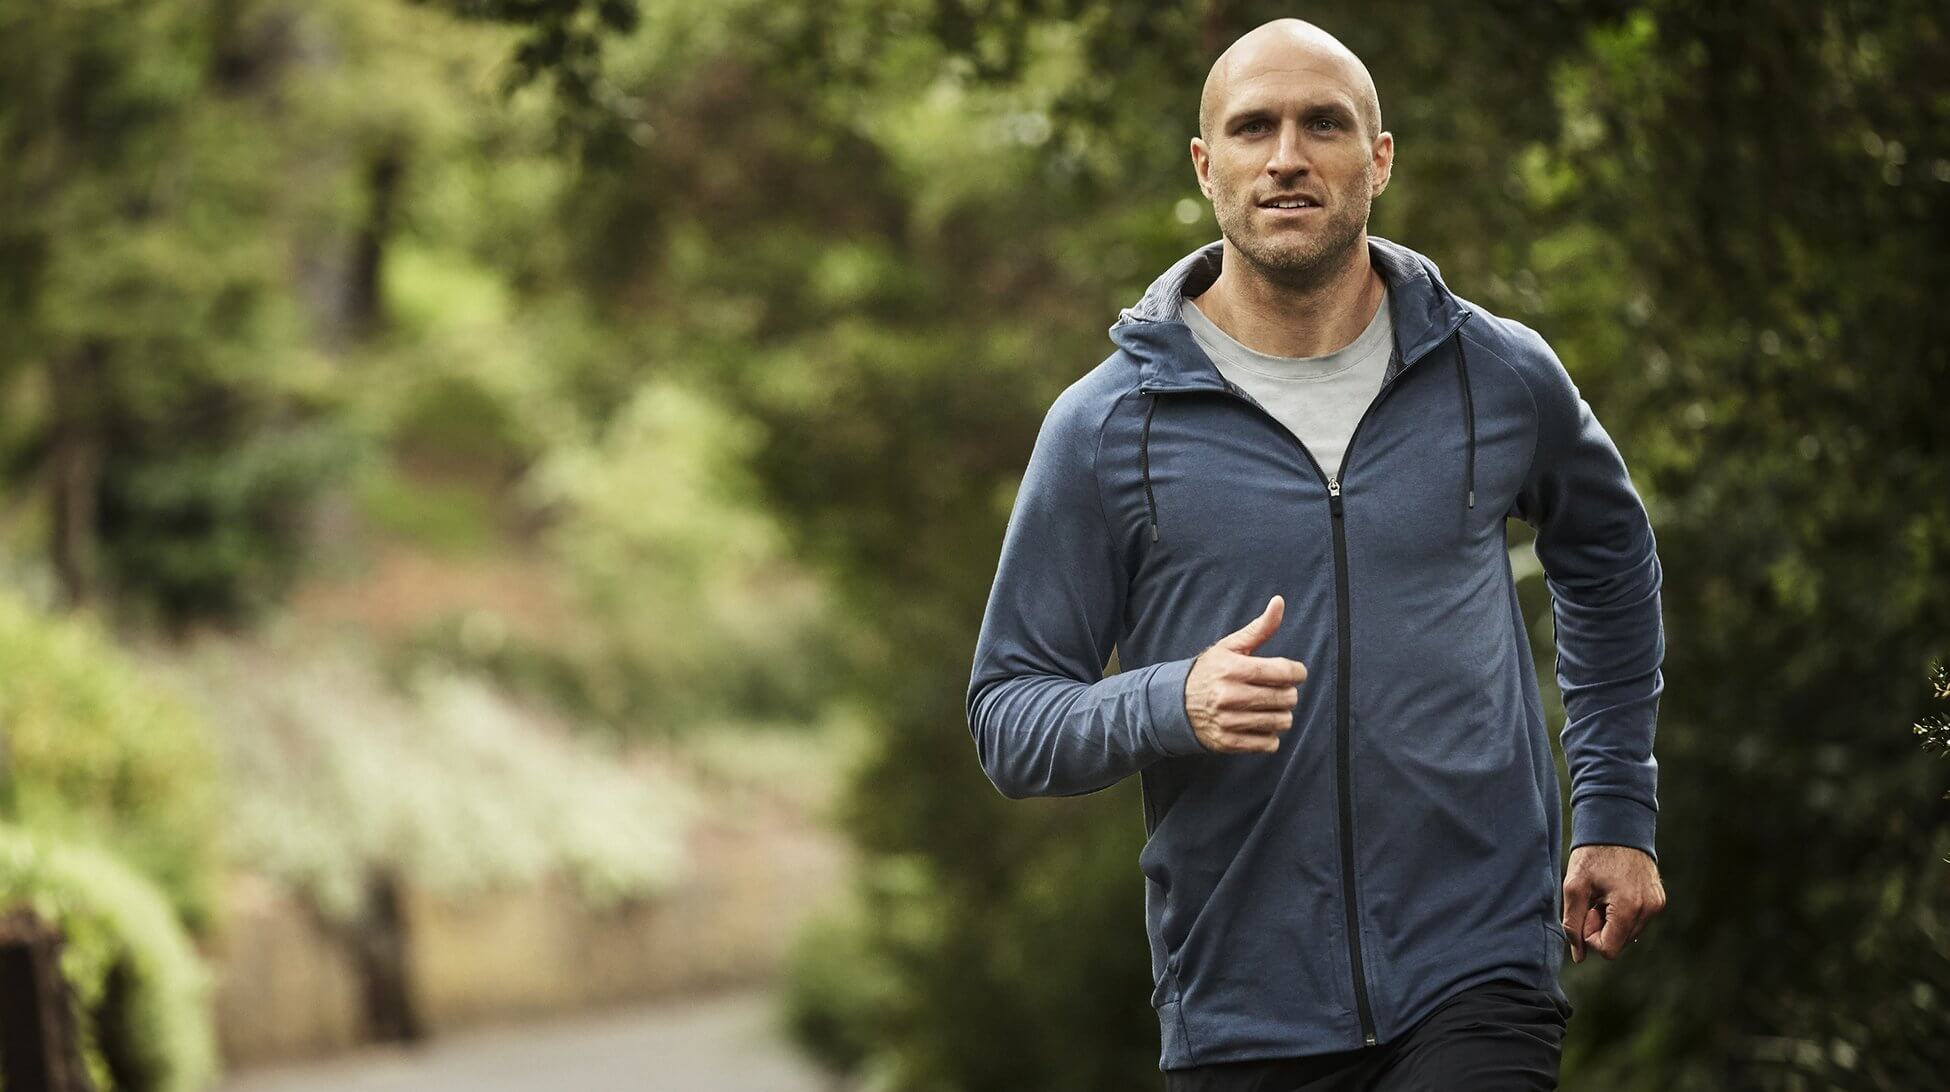 Chris Judd: 4 tips for easing back into a fitness routine